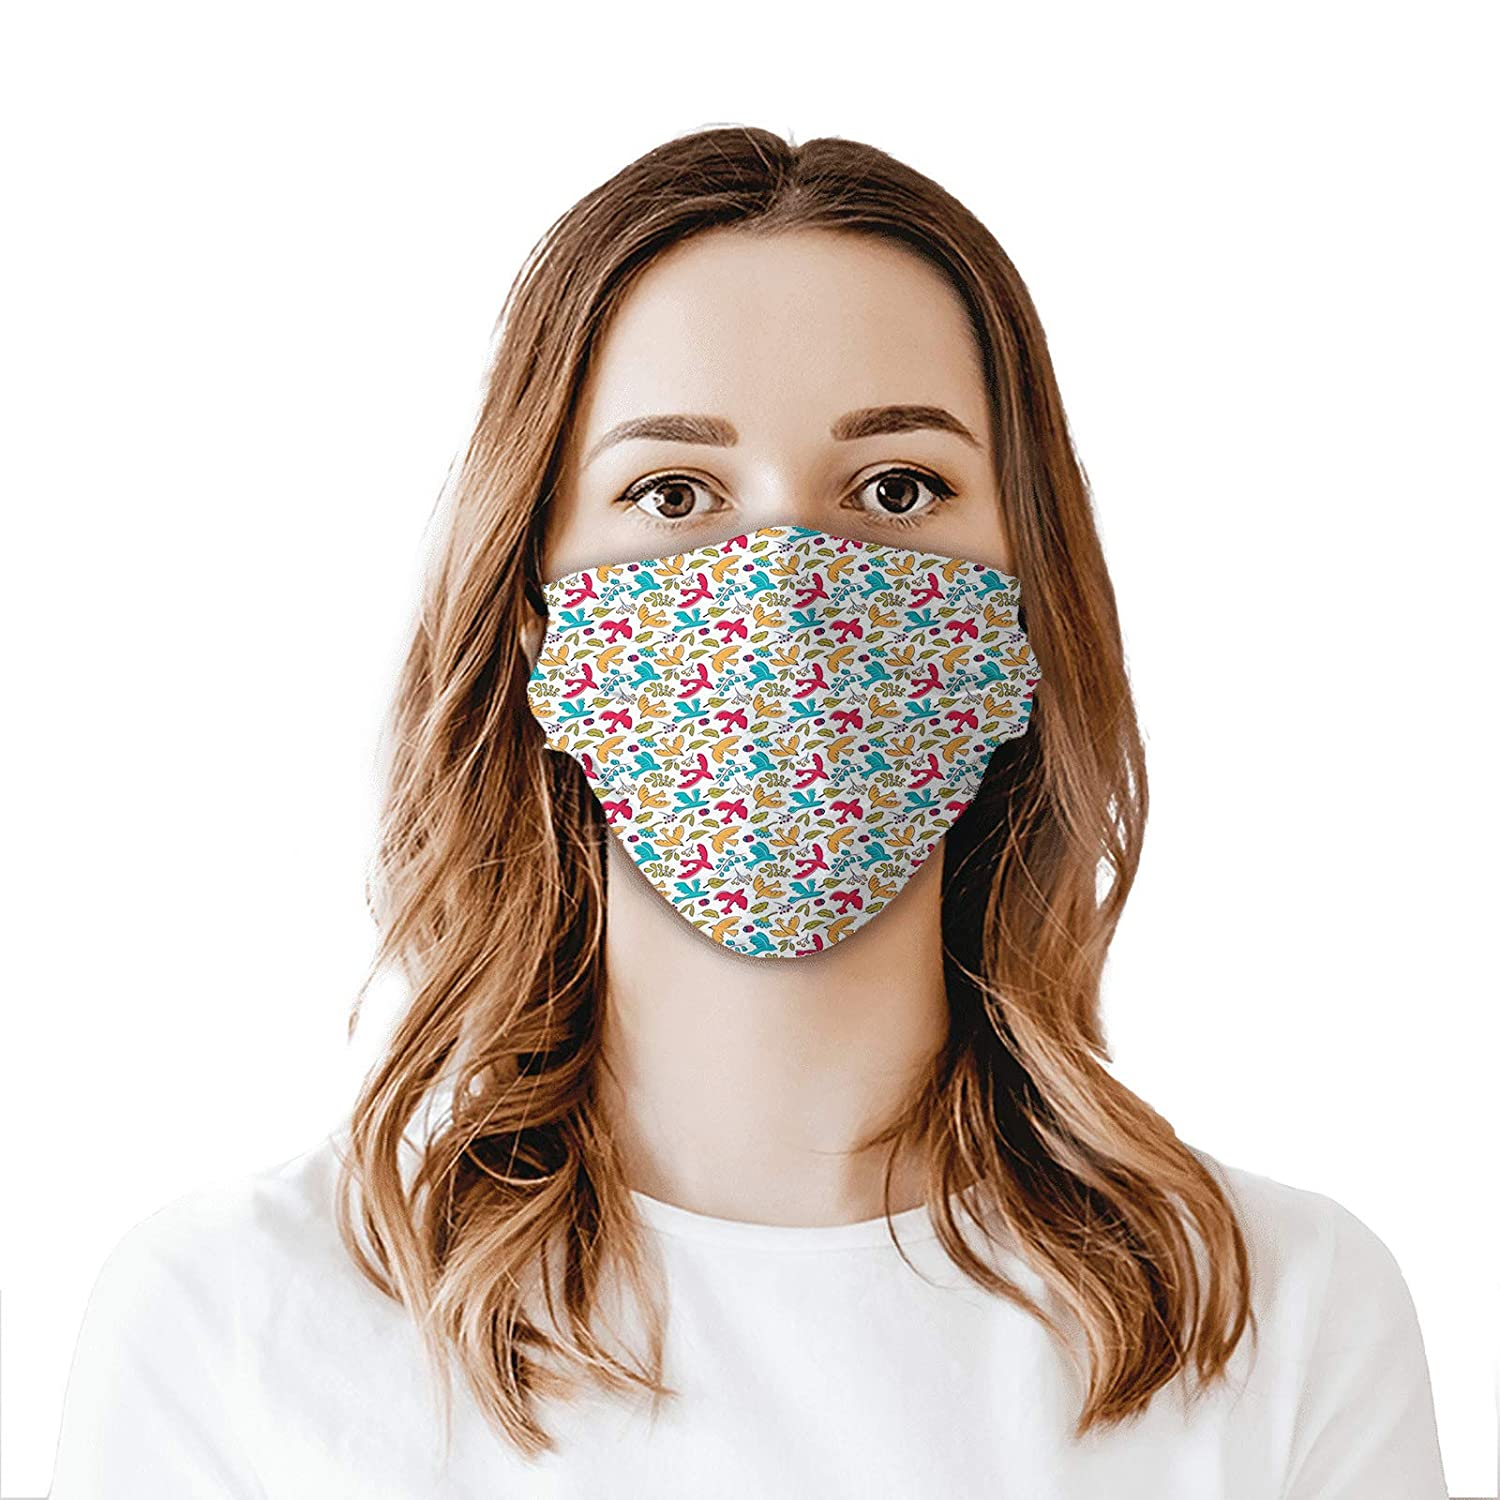 Comfortable Windproof mask Colorado Springs Mall Cheap mail order specialty store Cartoon Style Floral Ladybugs and El